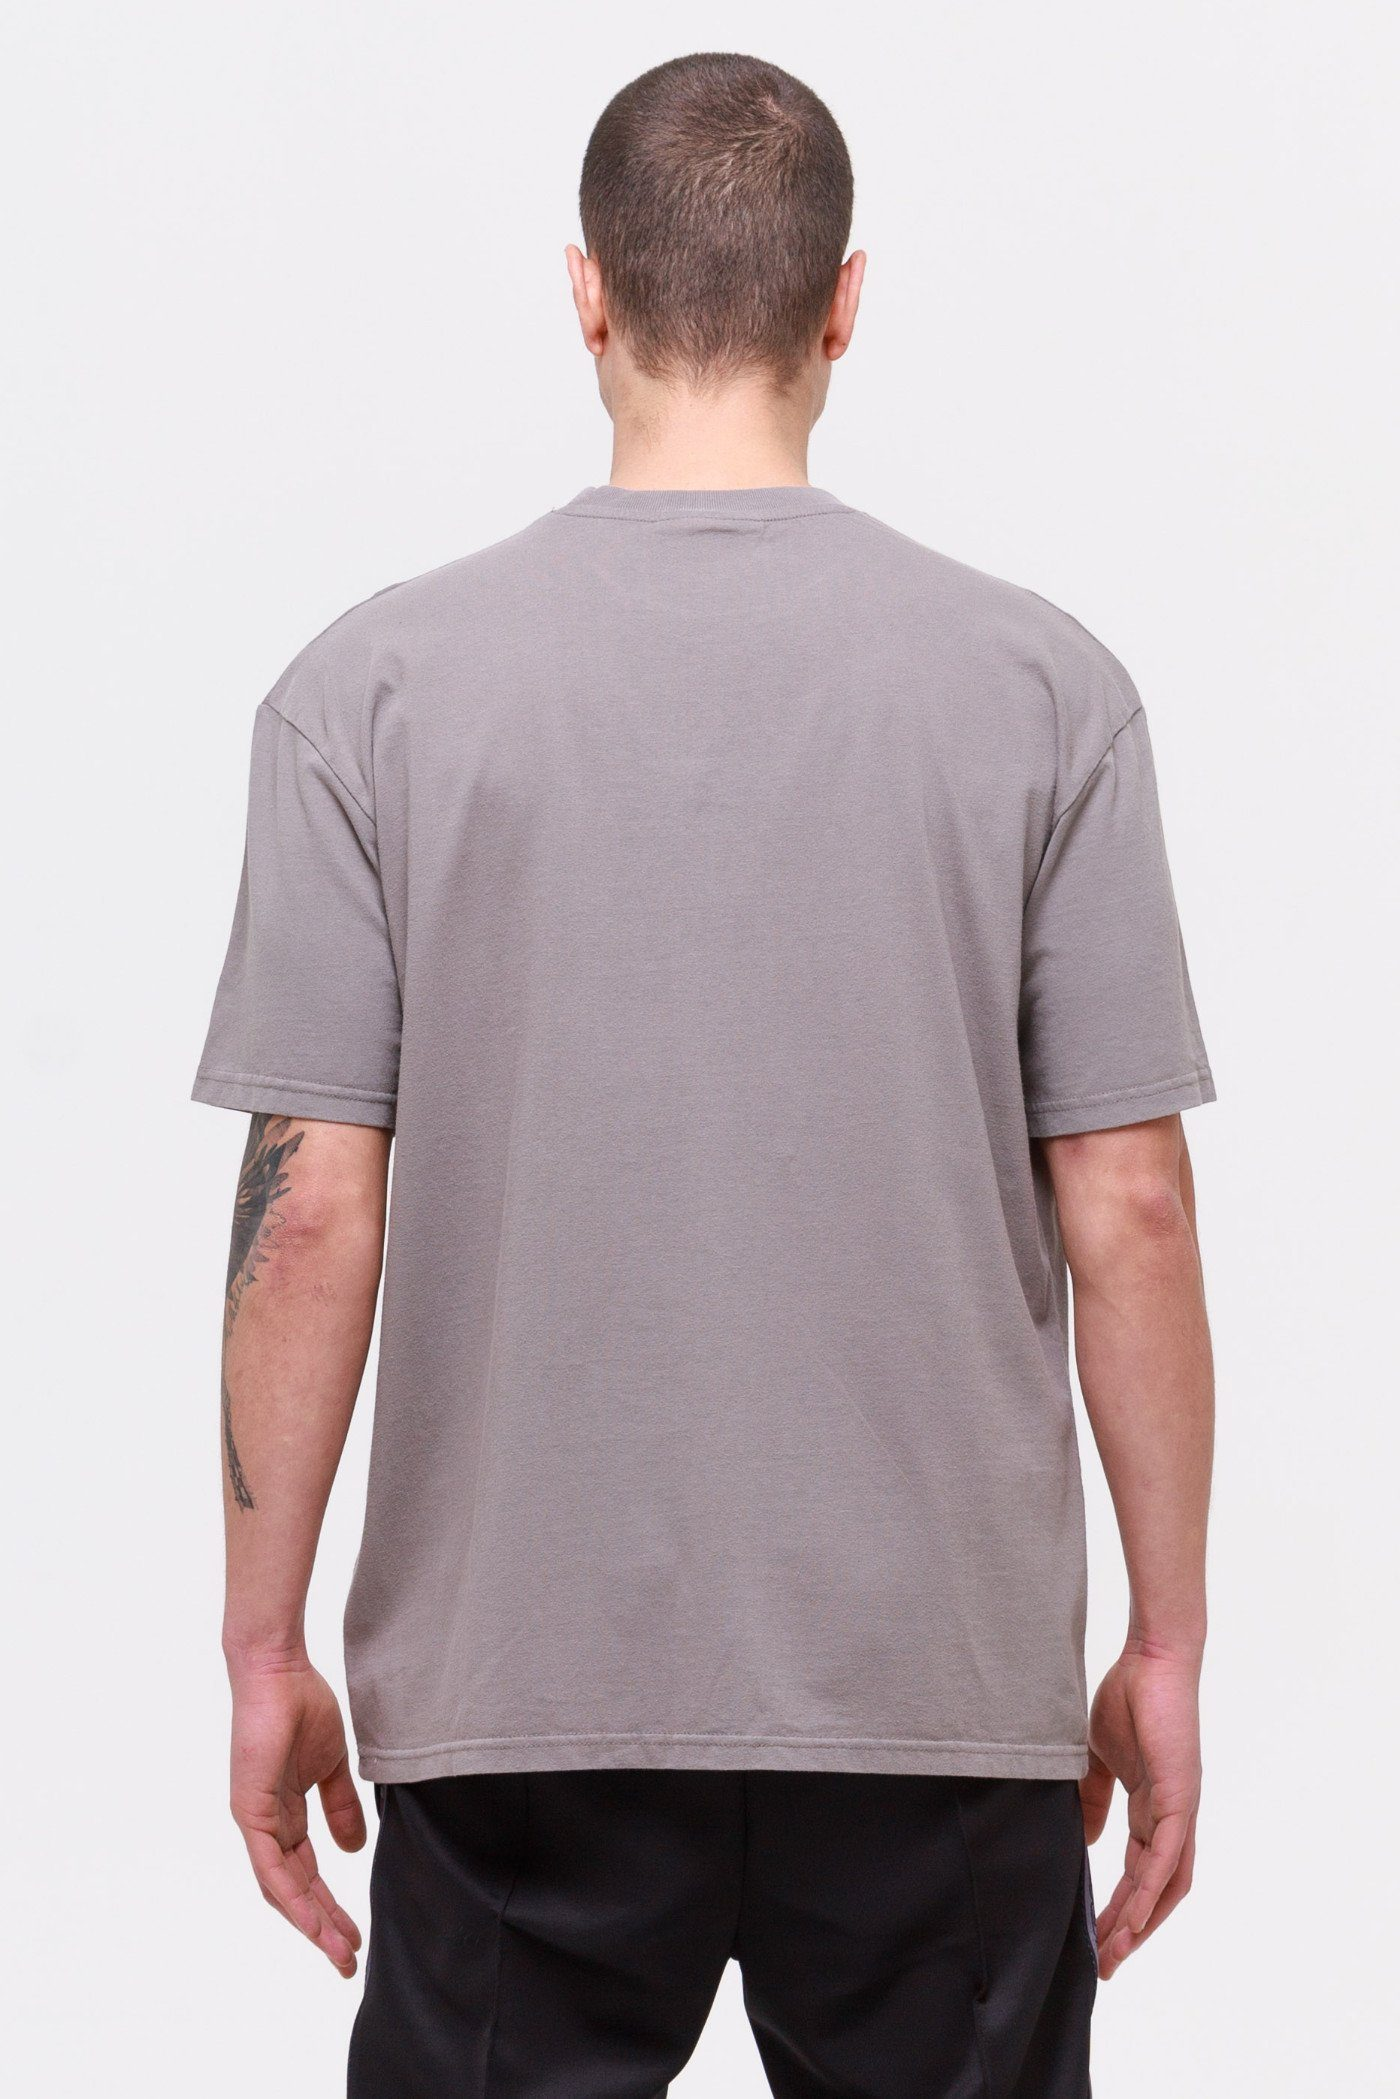 Cali Oversized Tee Washed Frost Grey T-SHIRT Wild Society